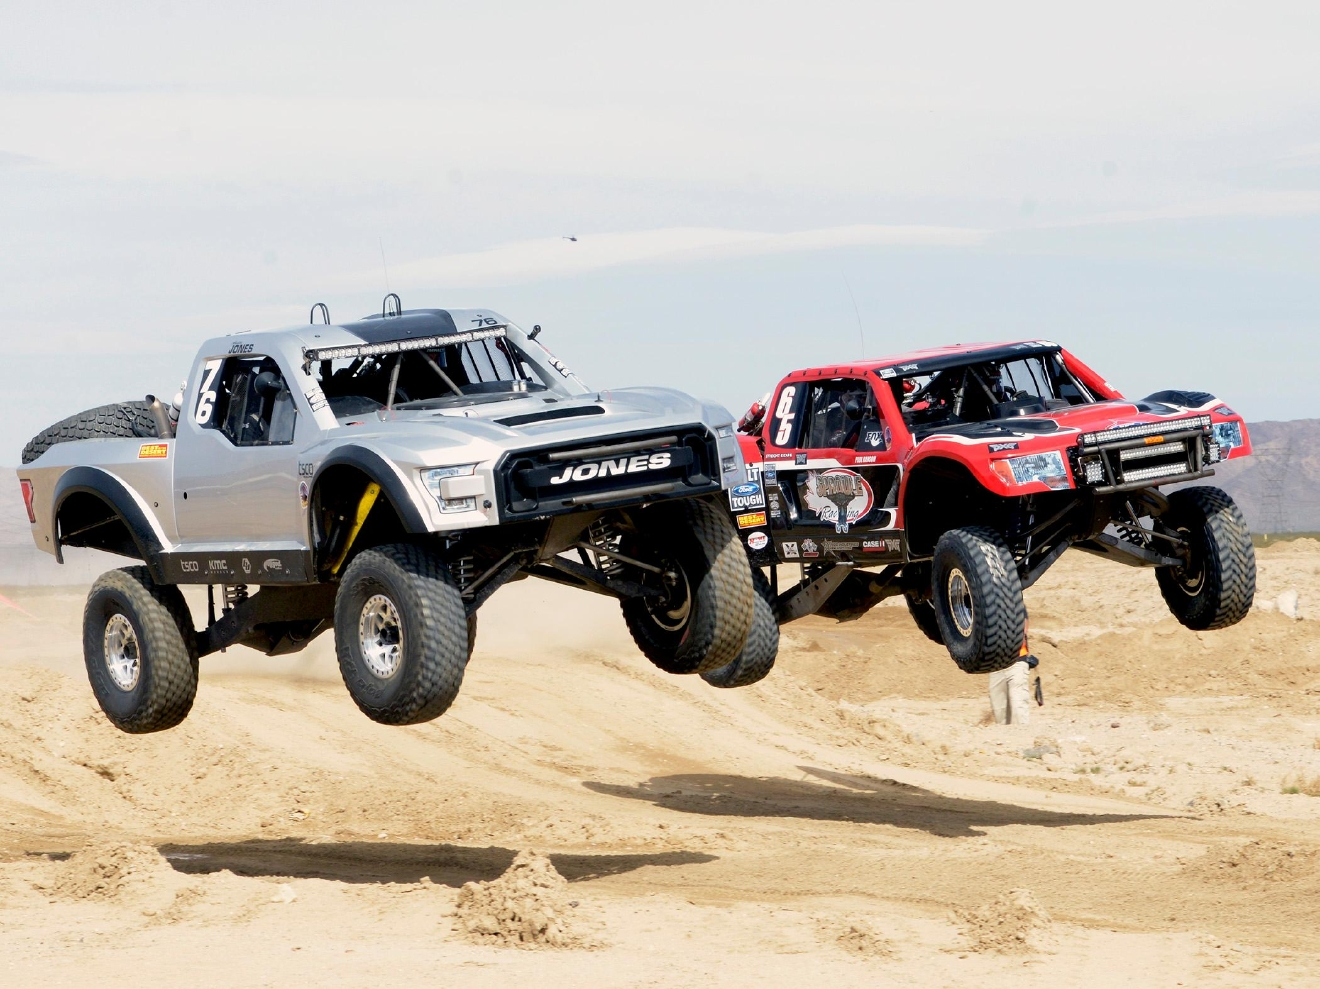 Mint 400 Off-road Race in Primm, Nevada. Saturday, March 4, 2017.  [Glenn Pinkerton/Las Vegas News Bureau]